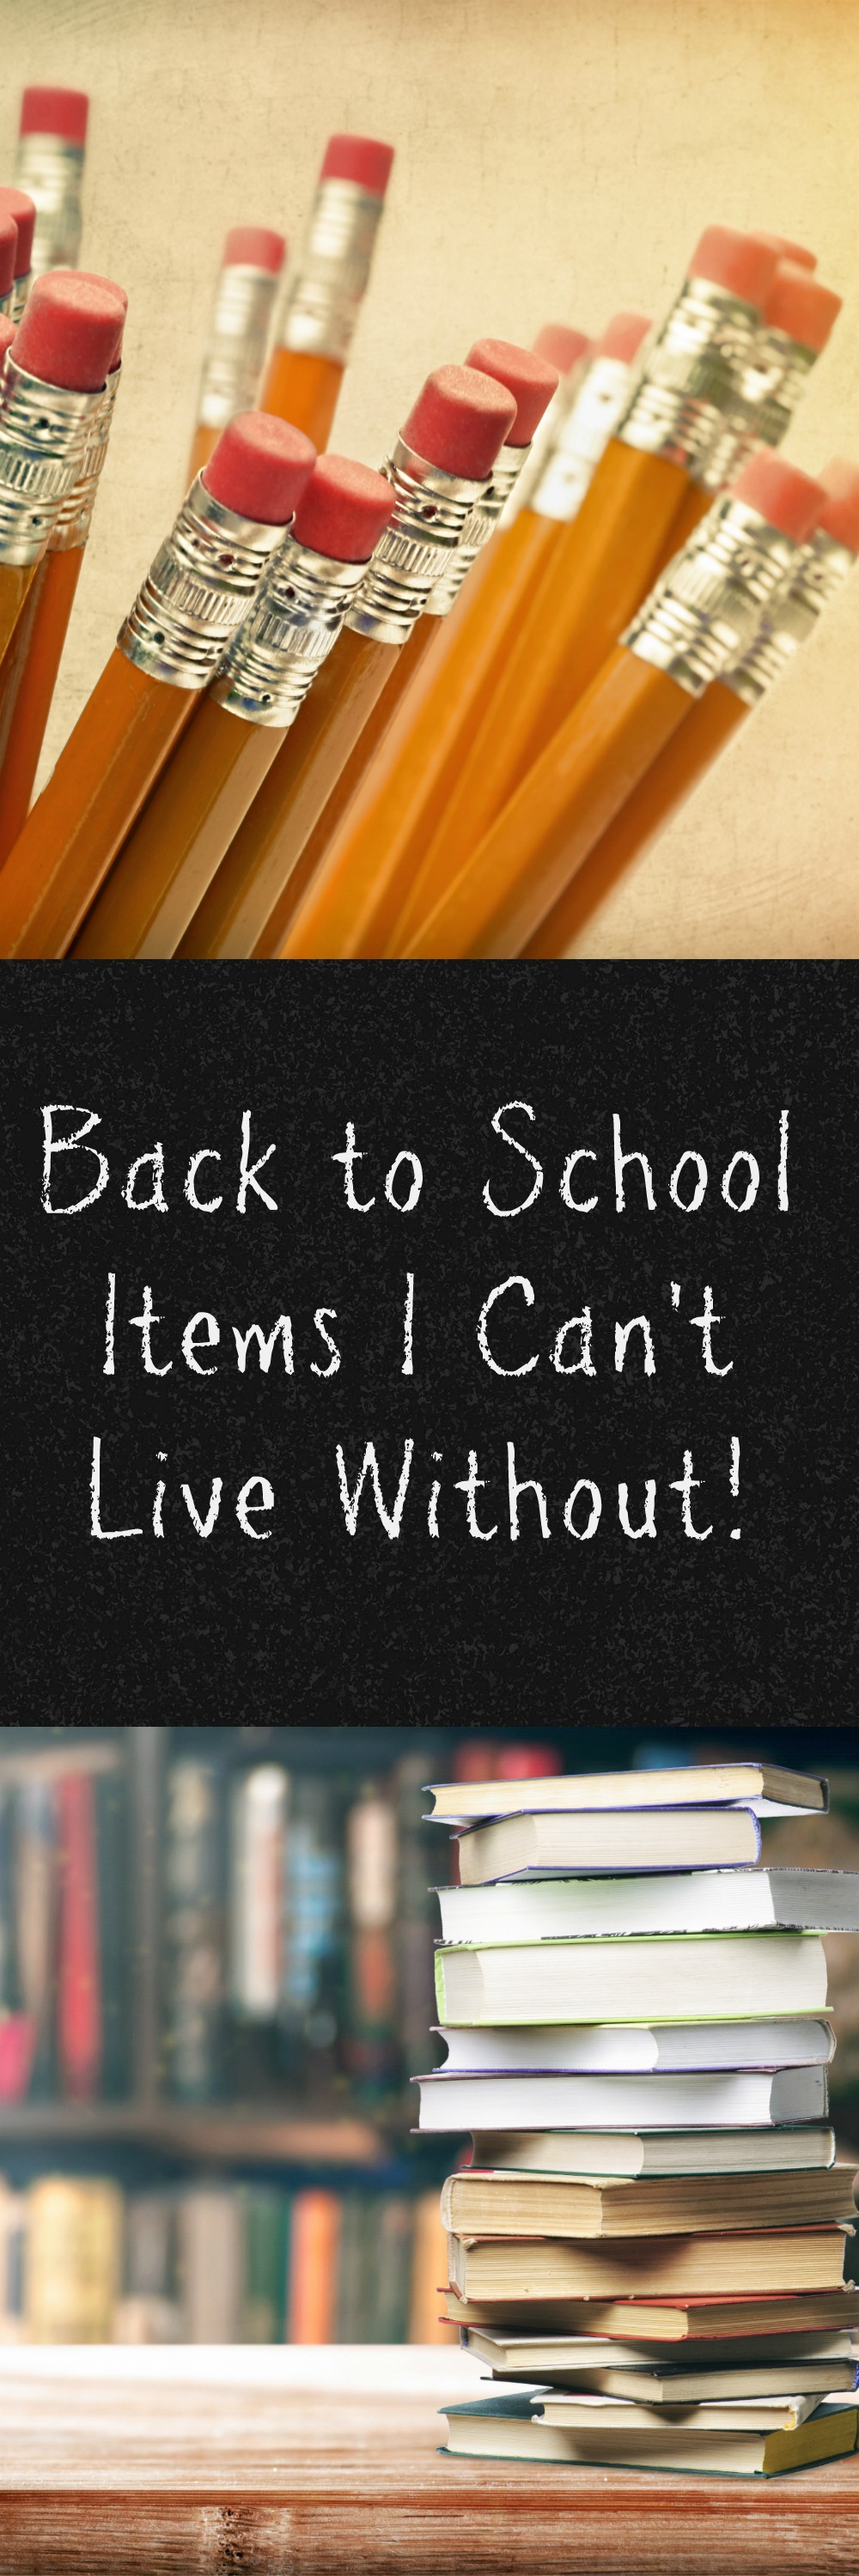 Back to School Items I can't Live Without!  Back to school time will be here before you know it, check out my list of items I can't live without!